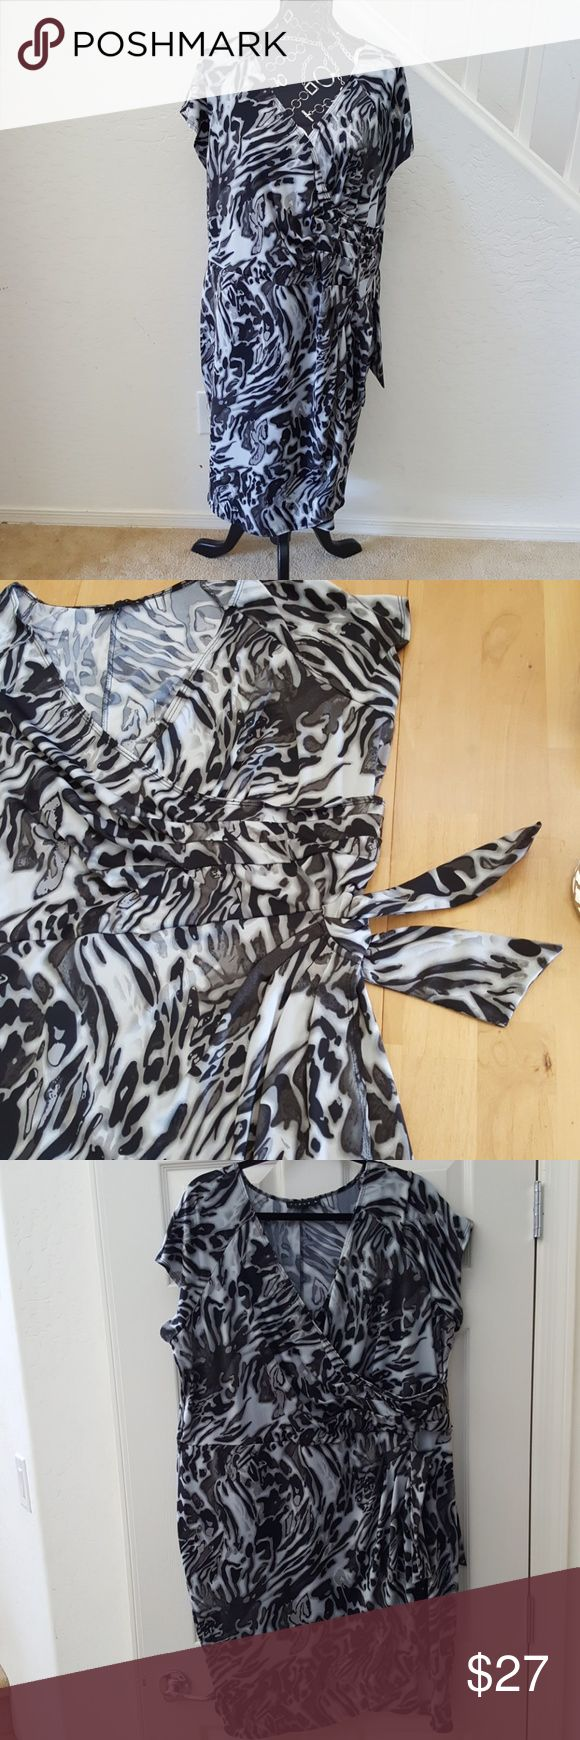 "Ruched Side Tie Animal Print Faux Wrap Dress 2x P Super stylish faux wrap dress in size 2x Petite. Length is 41"". This dress is so flexible both in fit and style. Easily go from career to ""night out"". Polyester Spandex blend has a nice weight to it to drape just right without being clingy. Side Tie adjusts fit. Machine washable. Thanks for looking! Tiana B.  Dresses"